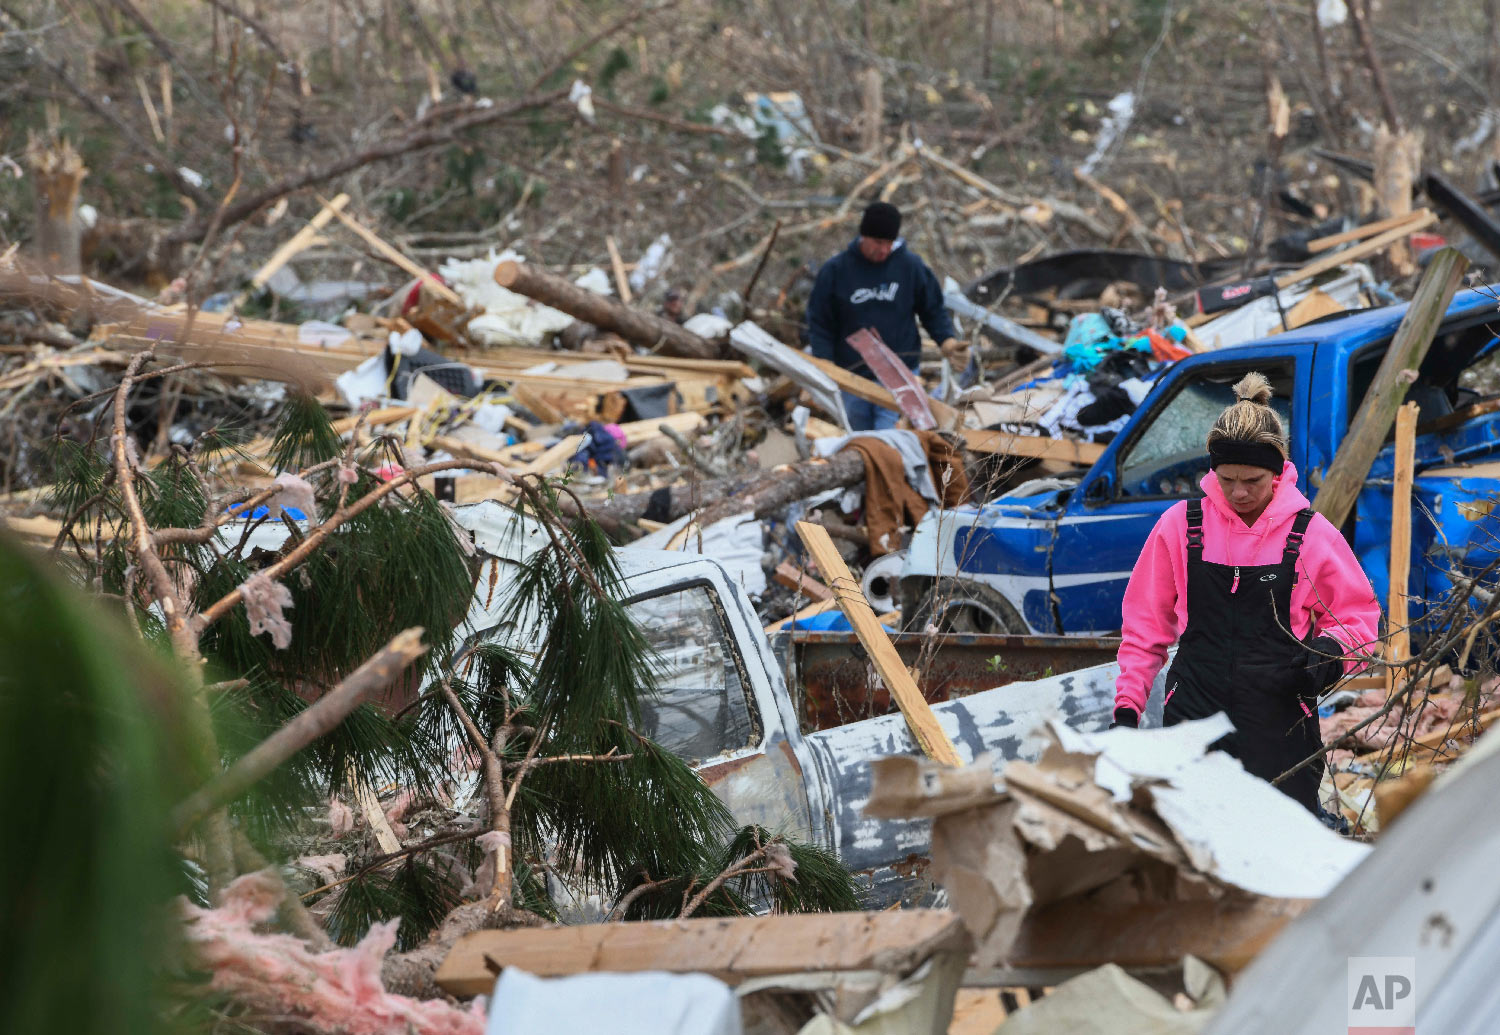 Residents and family members sift through the debris of their homes near Lee County Road 38 in Beauregard, Ala., March 4, 2019, a day after tornados ravaged the area. (AP Photo/Julie Bennett)